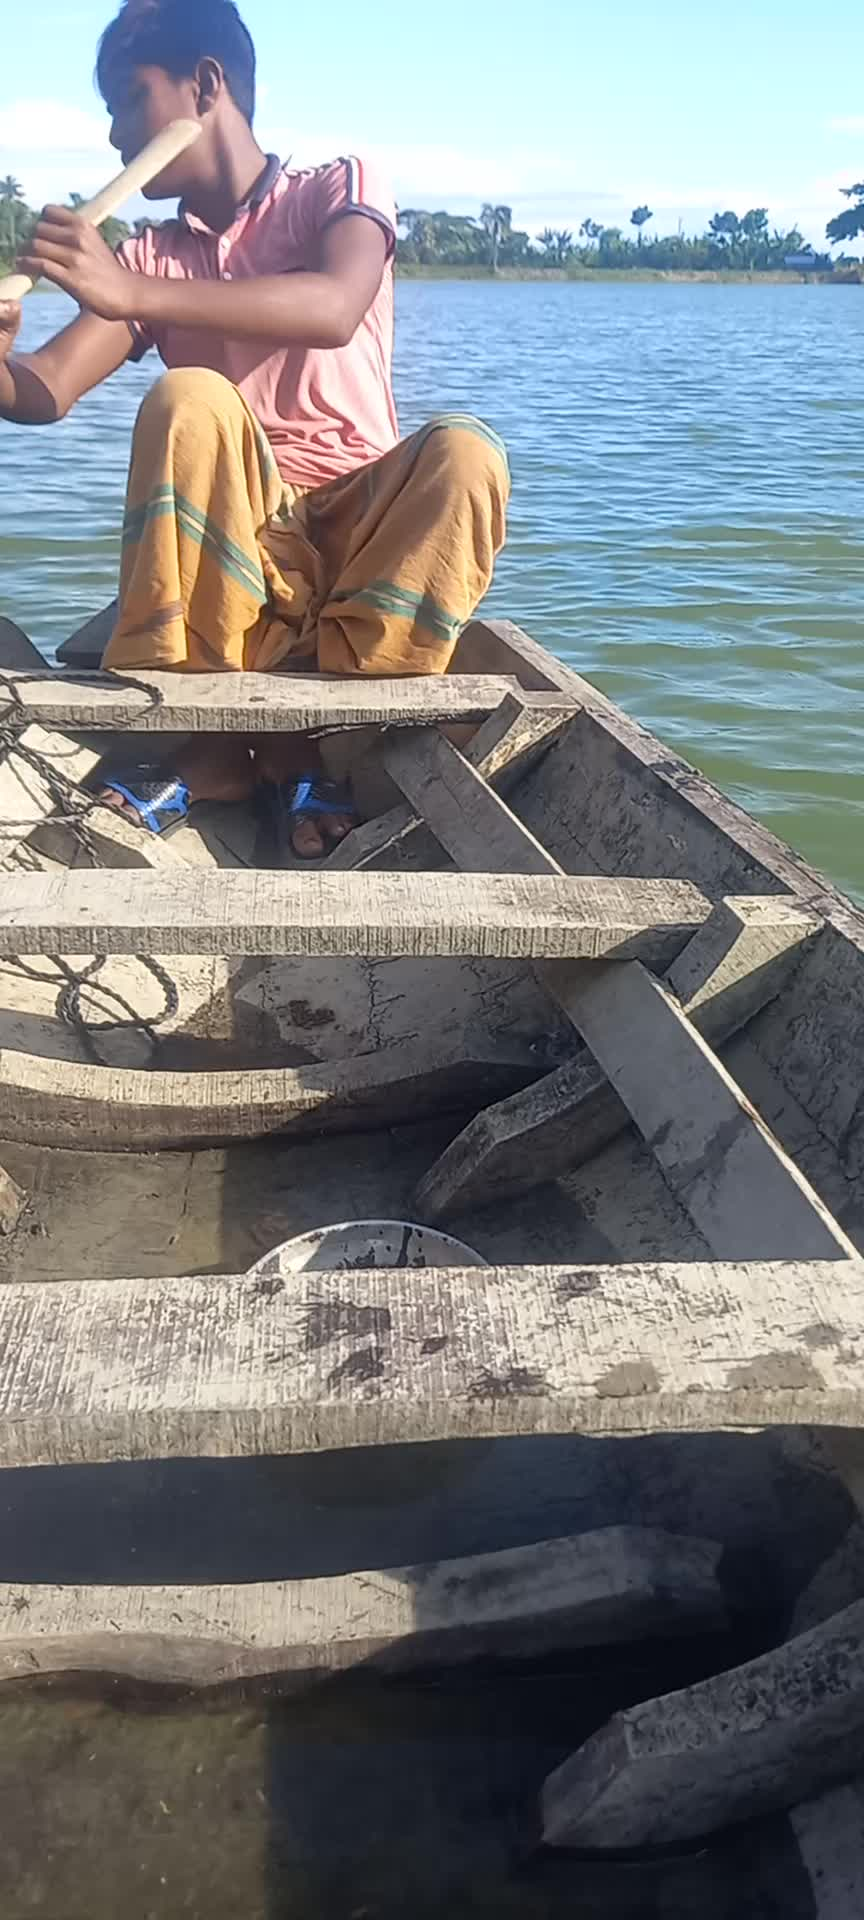 Boating is a nature scene in Bangladesh and this video shows you this scene.